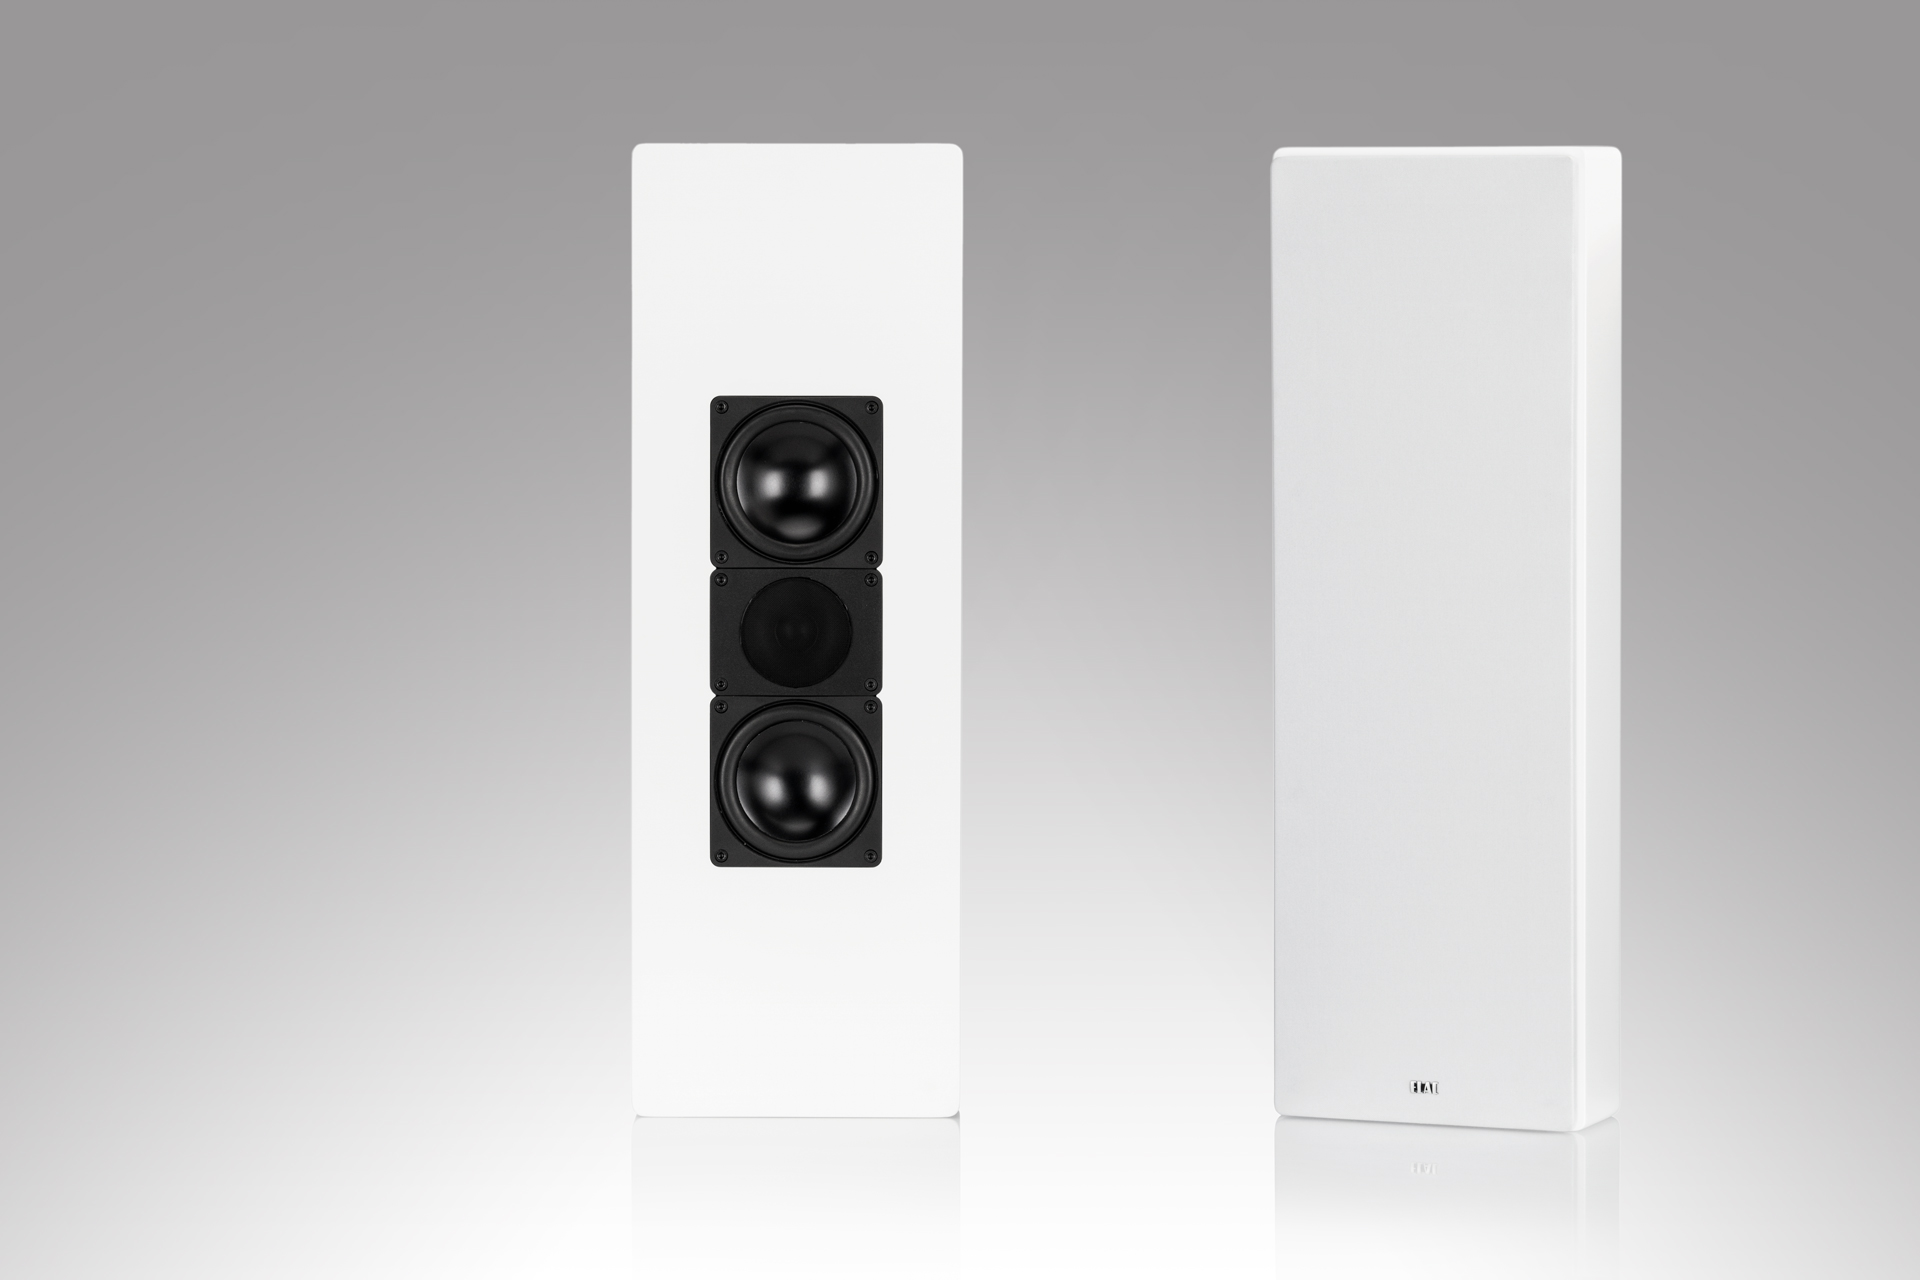 ELAC WS 1465 on-wall loudspeakers